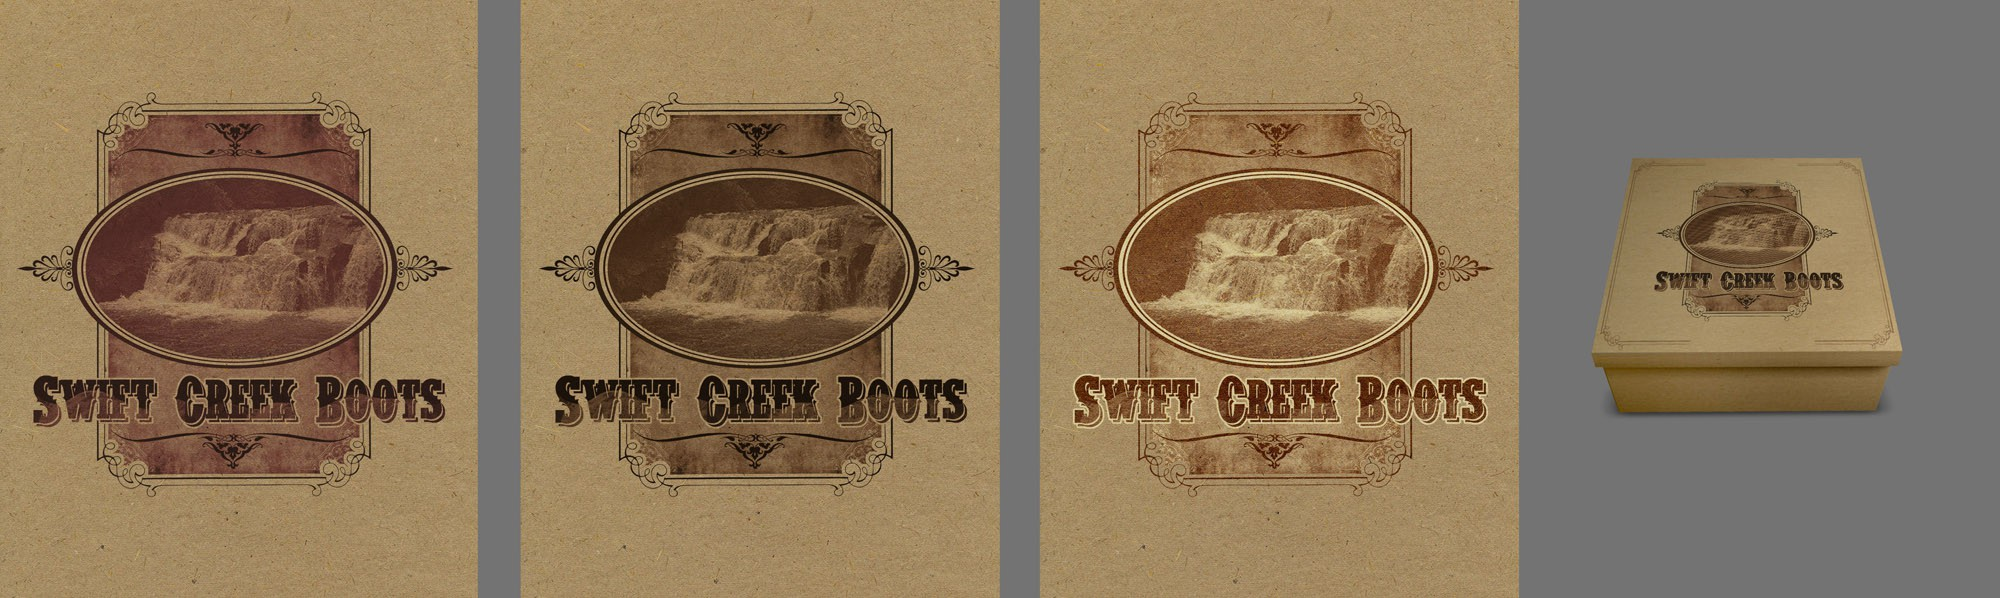 vintage western boot needs a new art or illustration